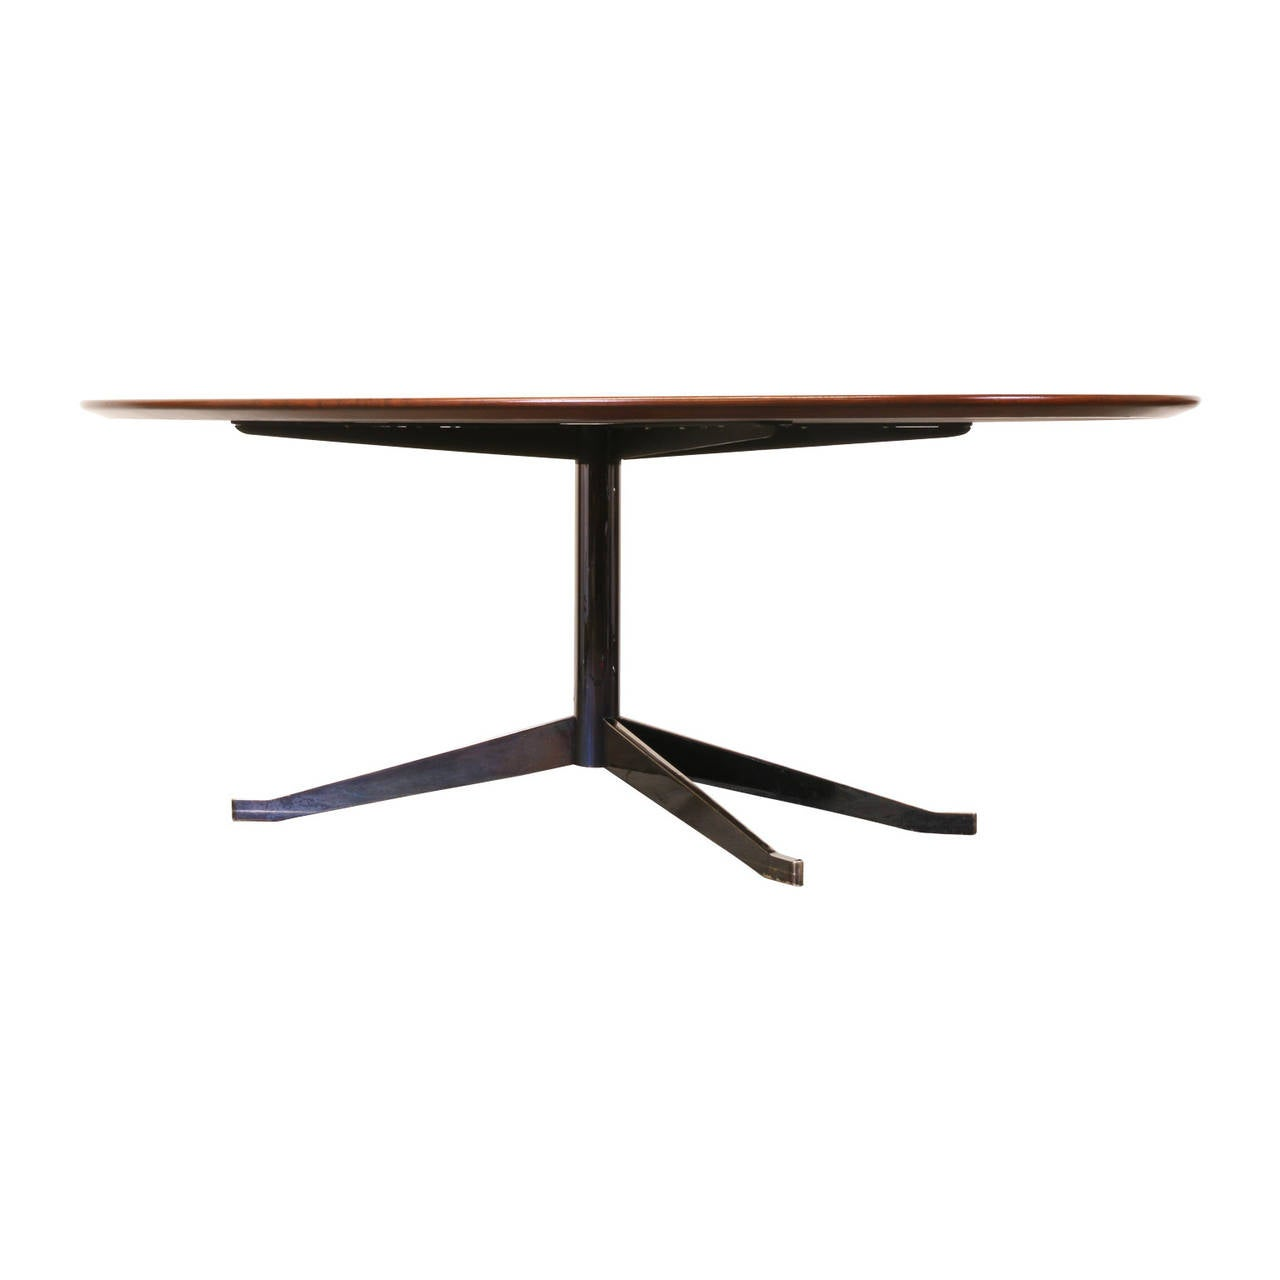 Florence Knoll Oval Dining Table or Desk at 1stdibs